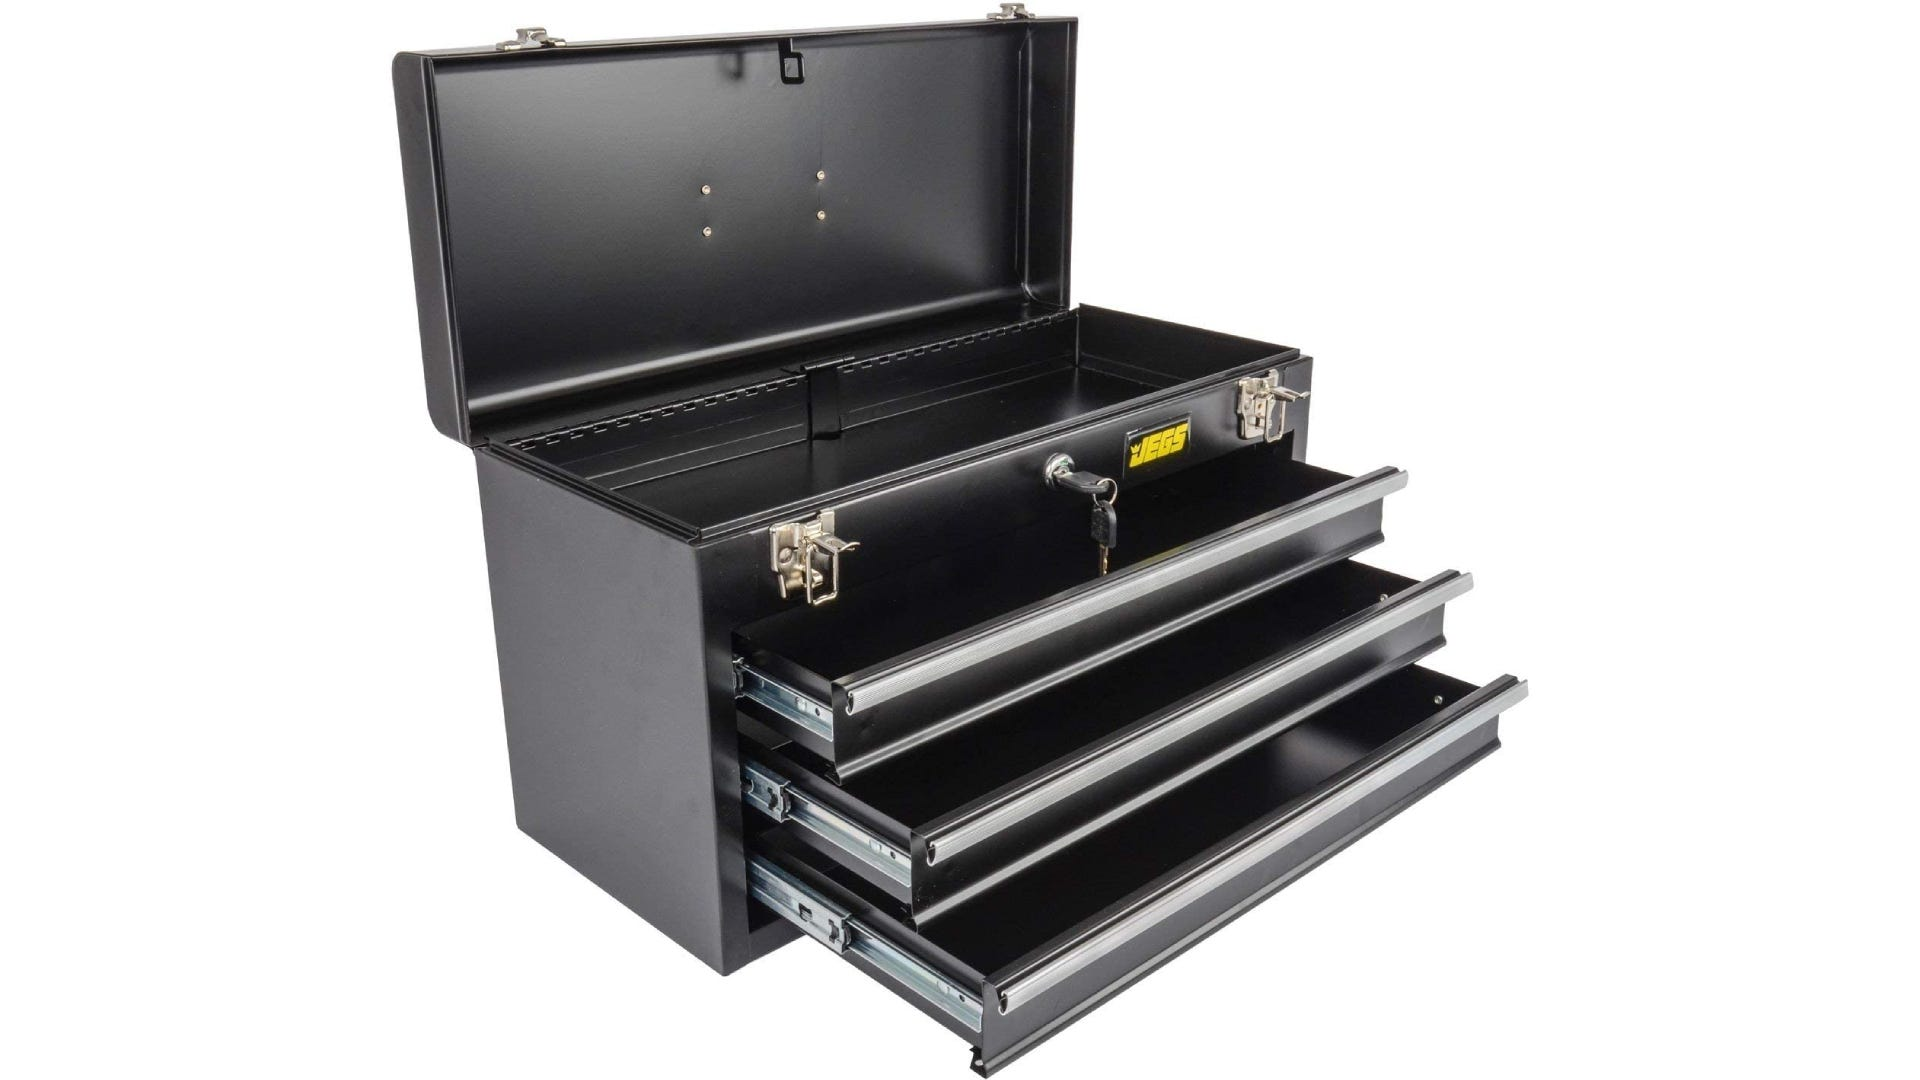 A black tool box with three open drawers and an opened top.